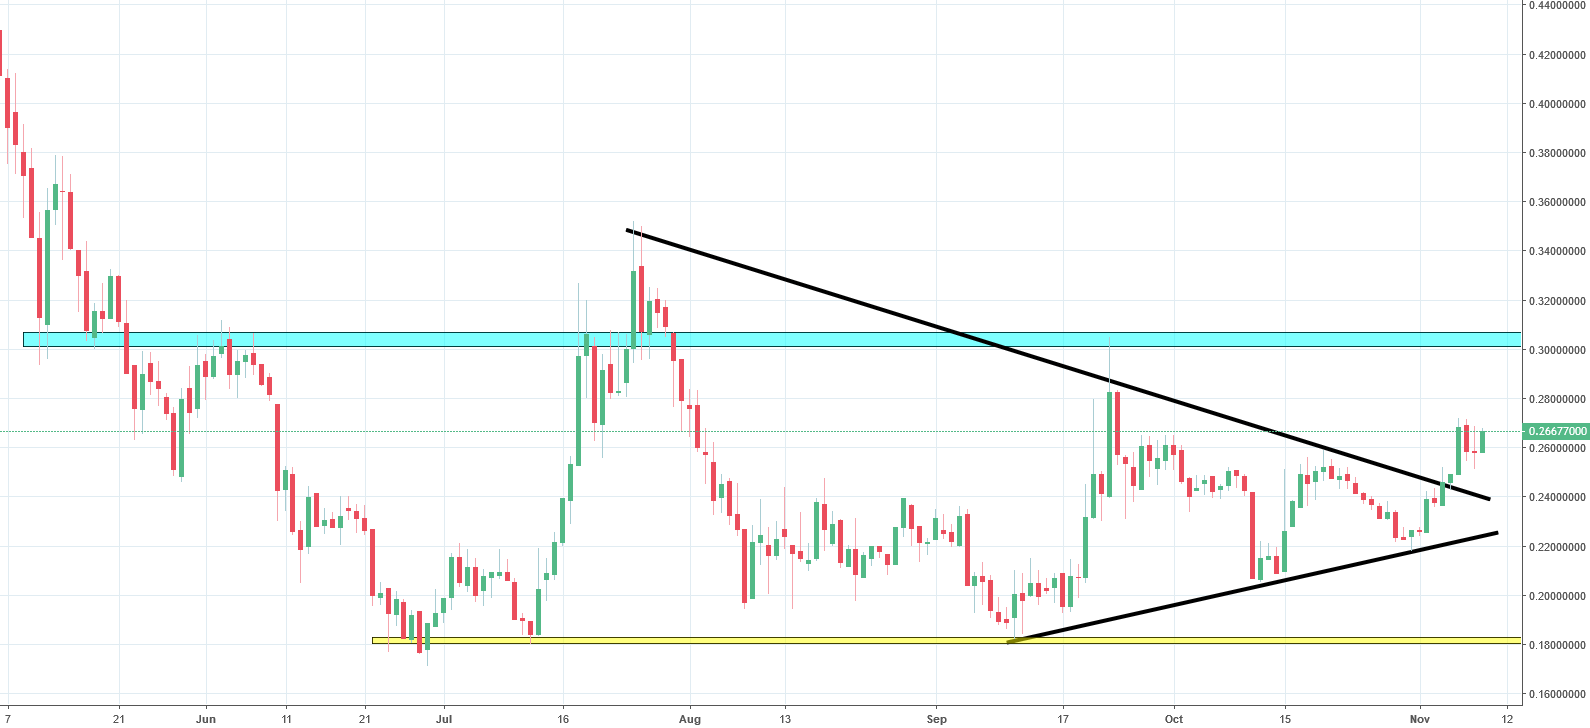 Stellar Lumens Analysis - sideways trend could end in a bullish breakout